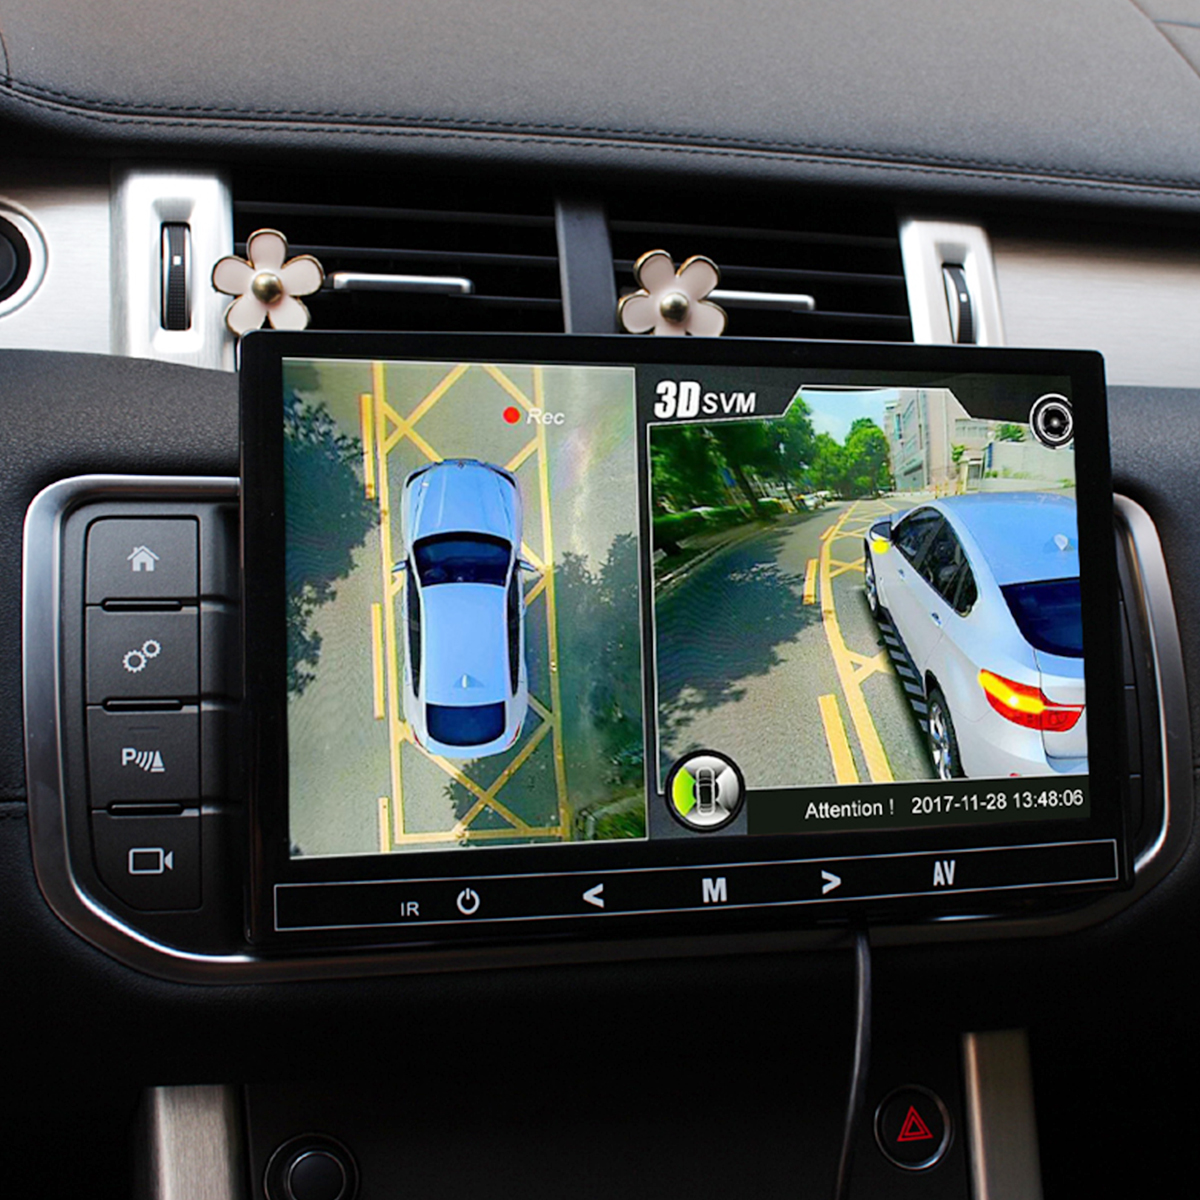 3D HD 360 <font><b>Car</b></font> Surround View Monitoring System Bird View System 4 Camera <font><b>DVR</b></font> HD 960P Recorder Parking Monitoring remote receiver image